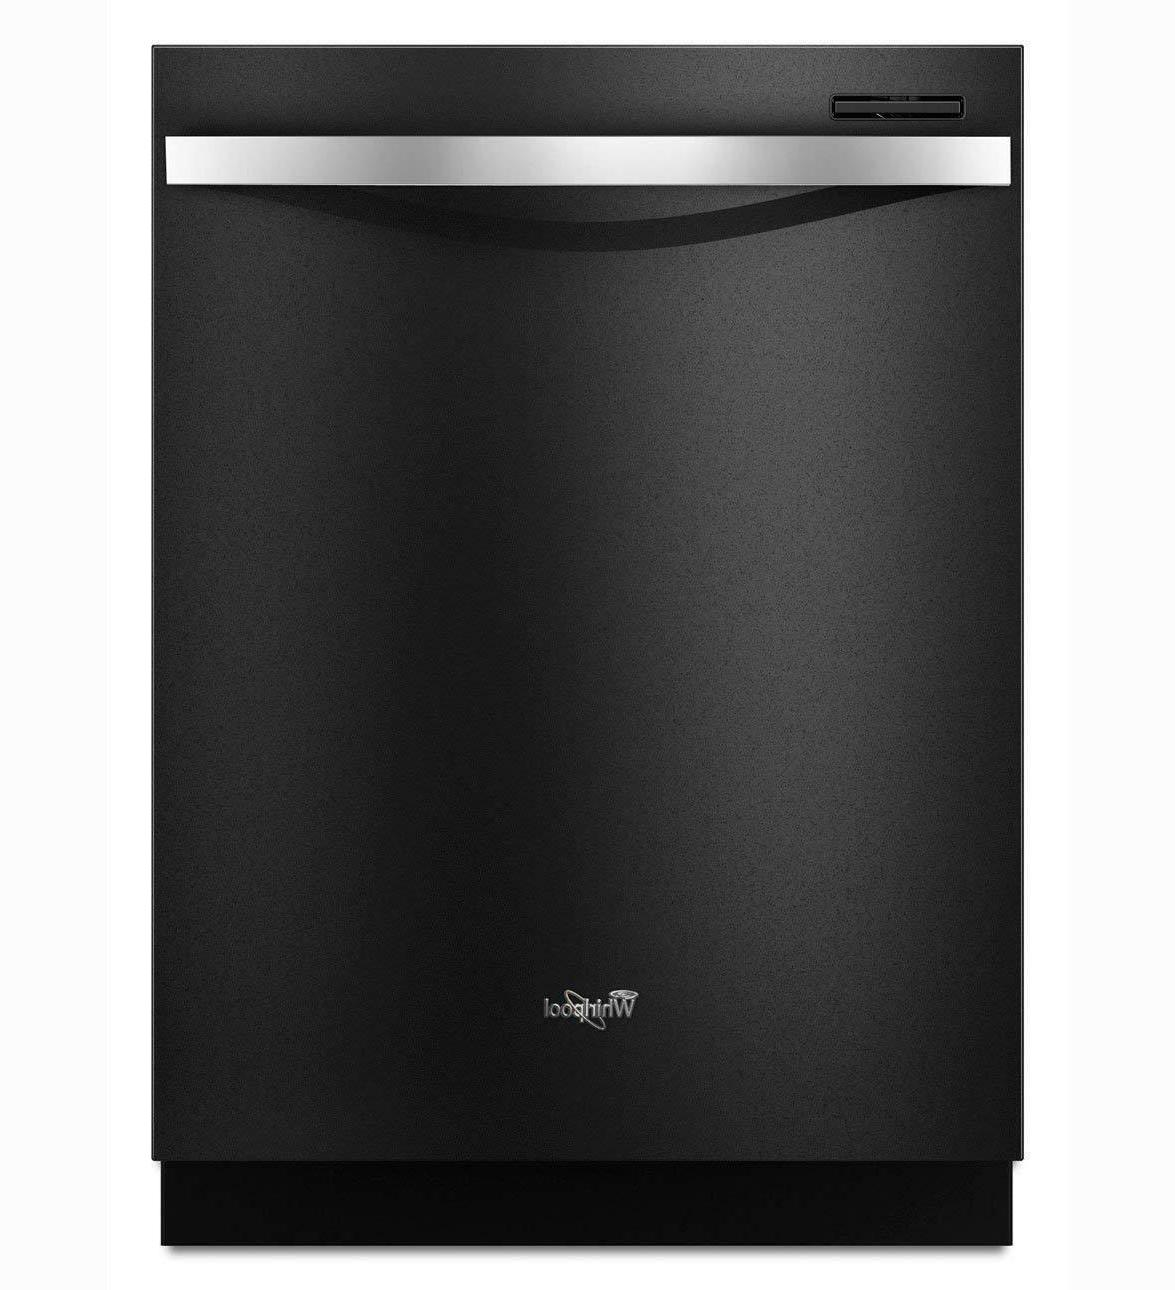 Whirlpool Gold 24 Inch Black Fully Integrated Dishwasher Ene